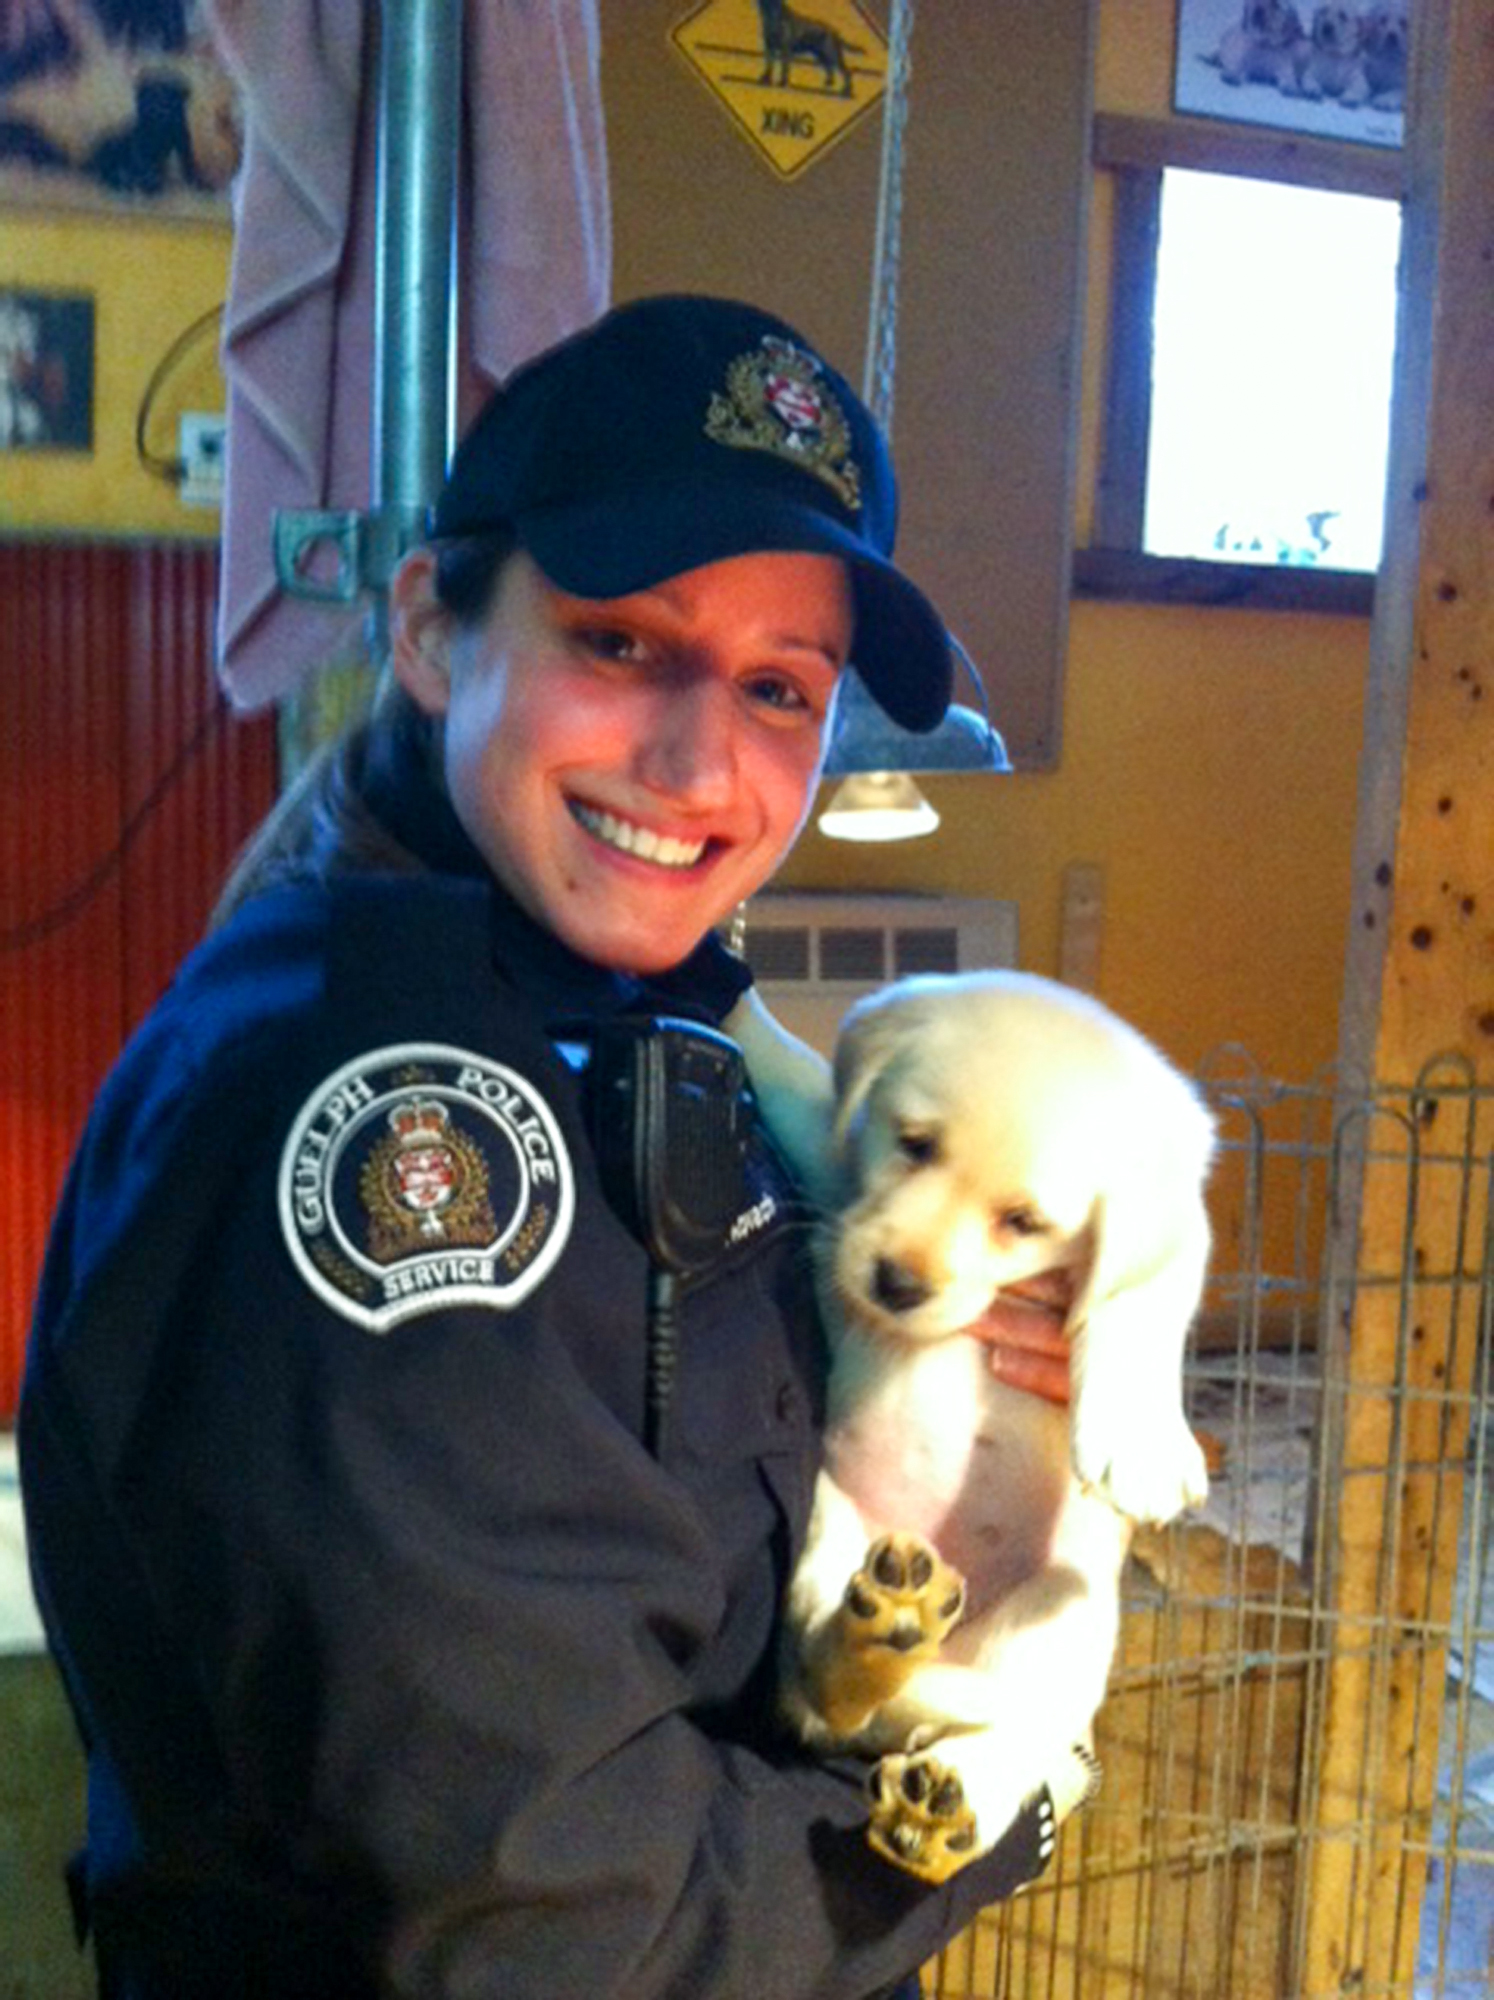 Canadian 1st Class Constable Jennifer Kovach of Guelph, Canada, died March 14, 2013, when her squad car was involved in a motor-vehicle accident while she was responding to a call for service. The 26-year-old fulfilled her dream of becoming a police officer serving her community and the Guelph Police Service for four years before her death. Kovach is survived by her mother, Gloria; father, Bill; brother, Brian; grandparents, Chester and Elvira Janicki; boyfriend, Kyle Schlosser; and many other friends and family.